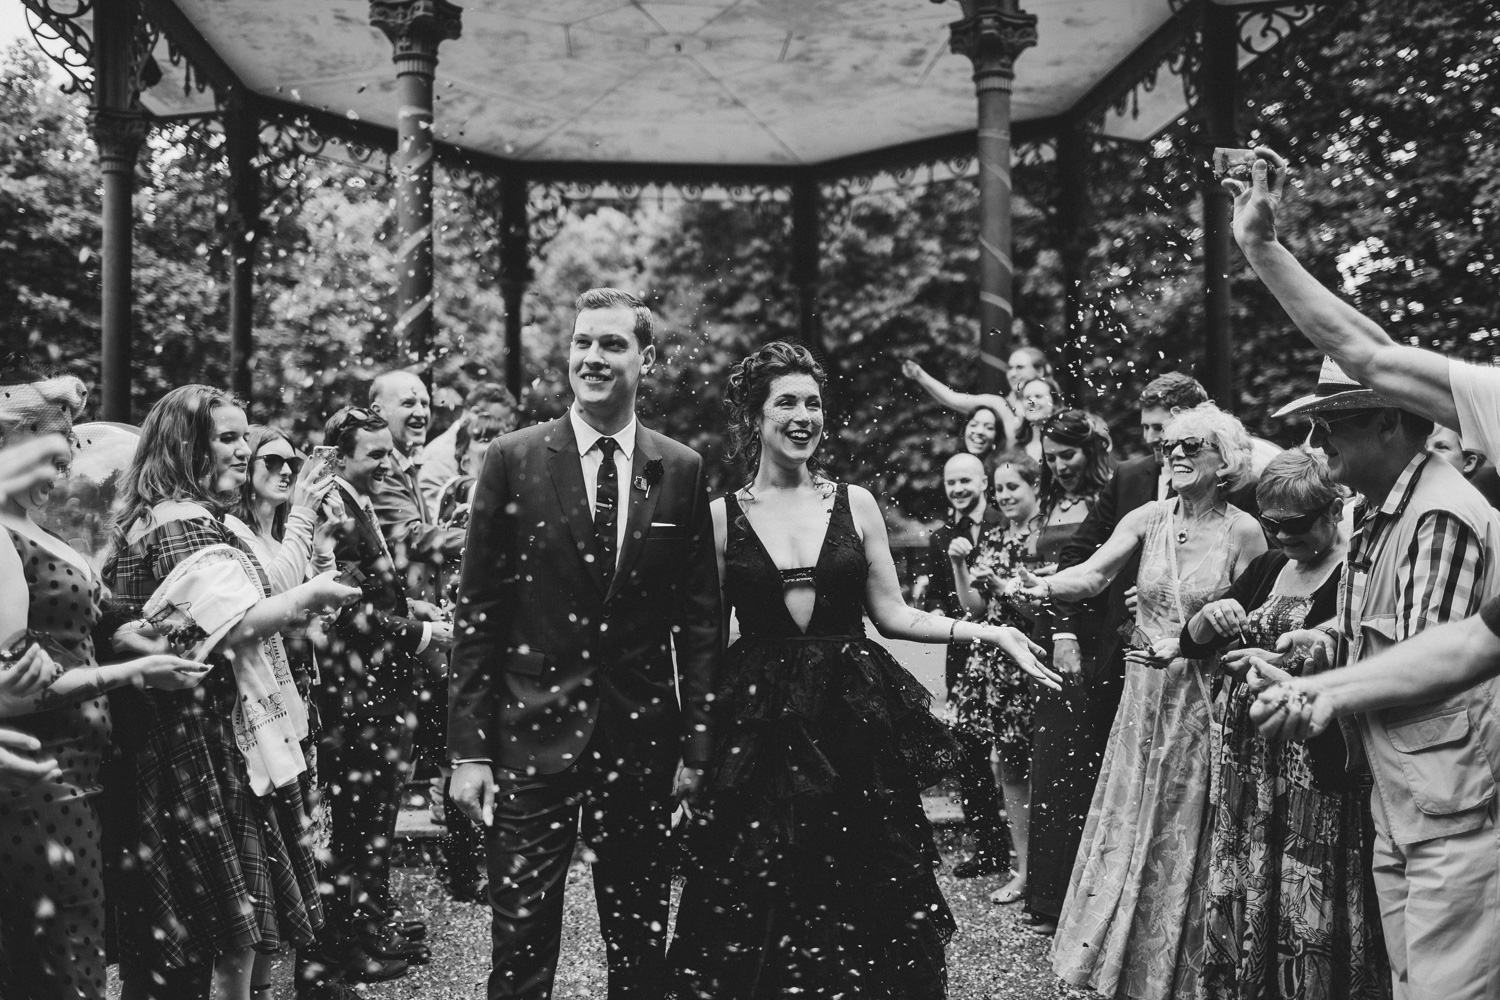 Quirky Venue, Non-traditional wedding planner, London Wedding coordination, Bespoke weddings, Brixton East 1871 Wedding, informal, Dry hire venue, Warehouse wedding, Dita Rosted Events